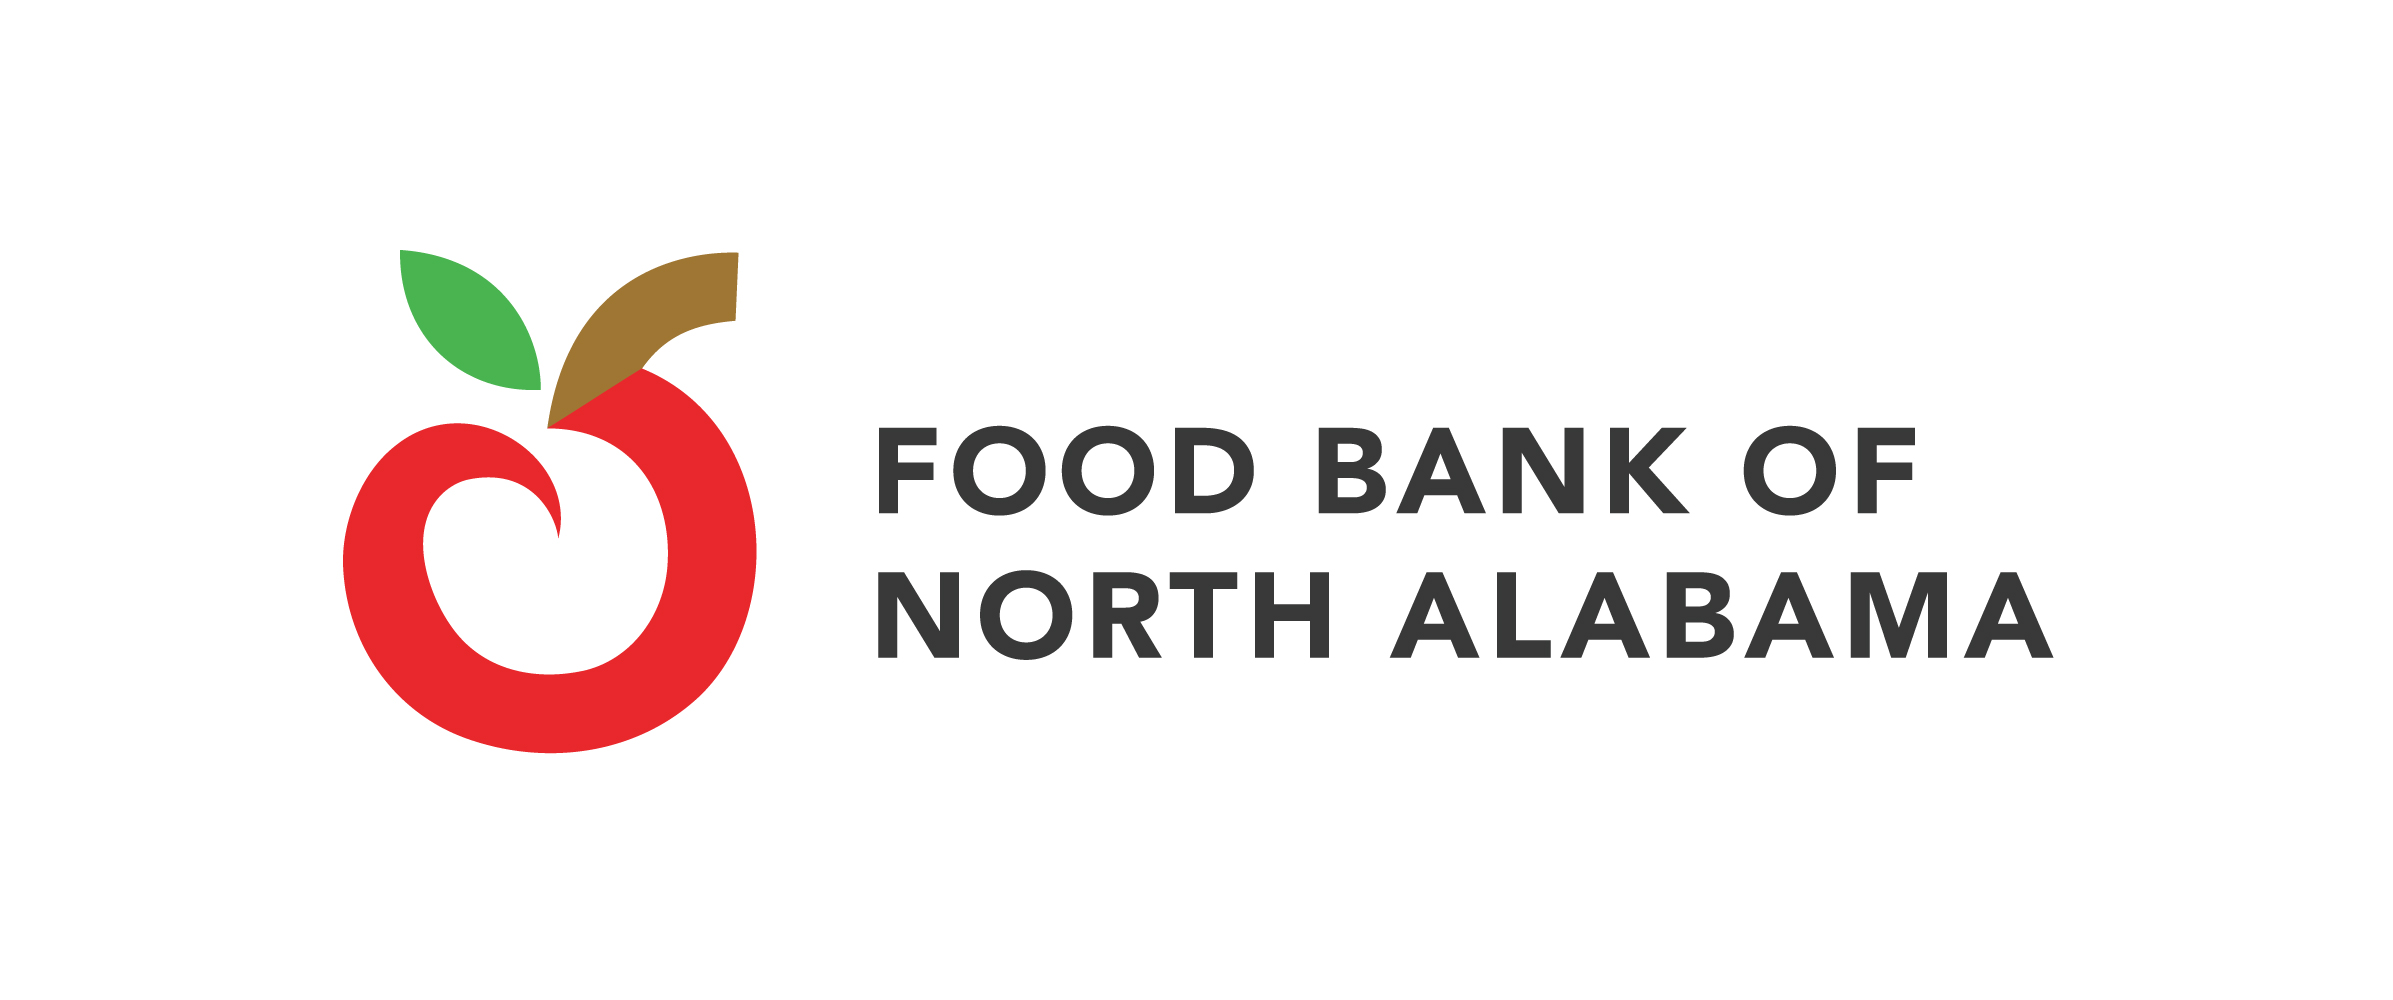 Food Bank of North Alabama - The Food Bank of North Alabama, based in Huntsville, Alabama, works to end hunger by offering hunger relief programs that immediately feed people in need. It also addresses hunger's root causes through local food initiatives that foster entrepreneurship and healthy food access.